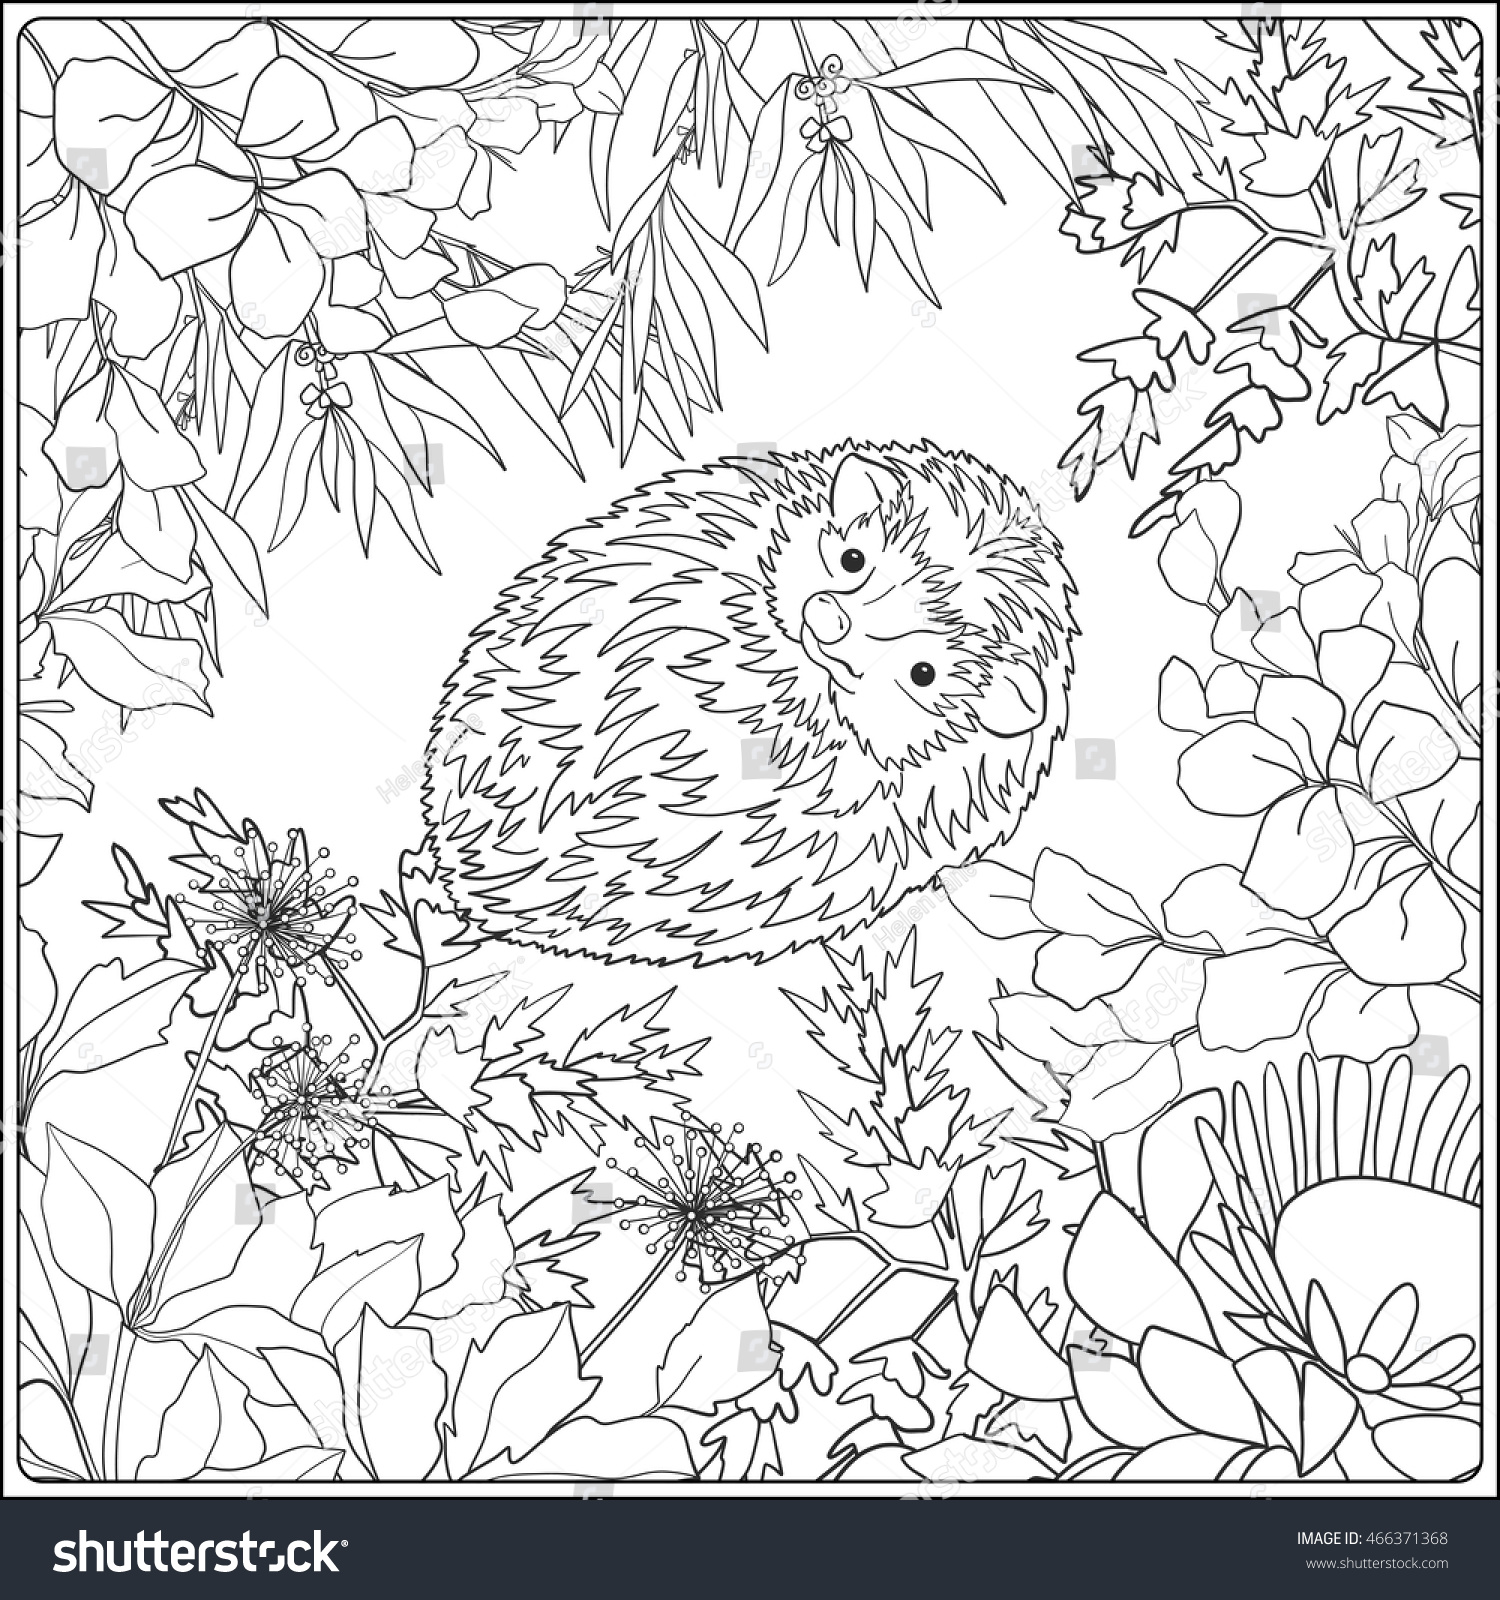 coloring page lovely hedgehog coloring book stock vector 466371368